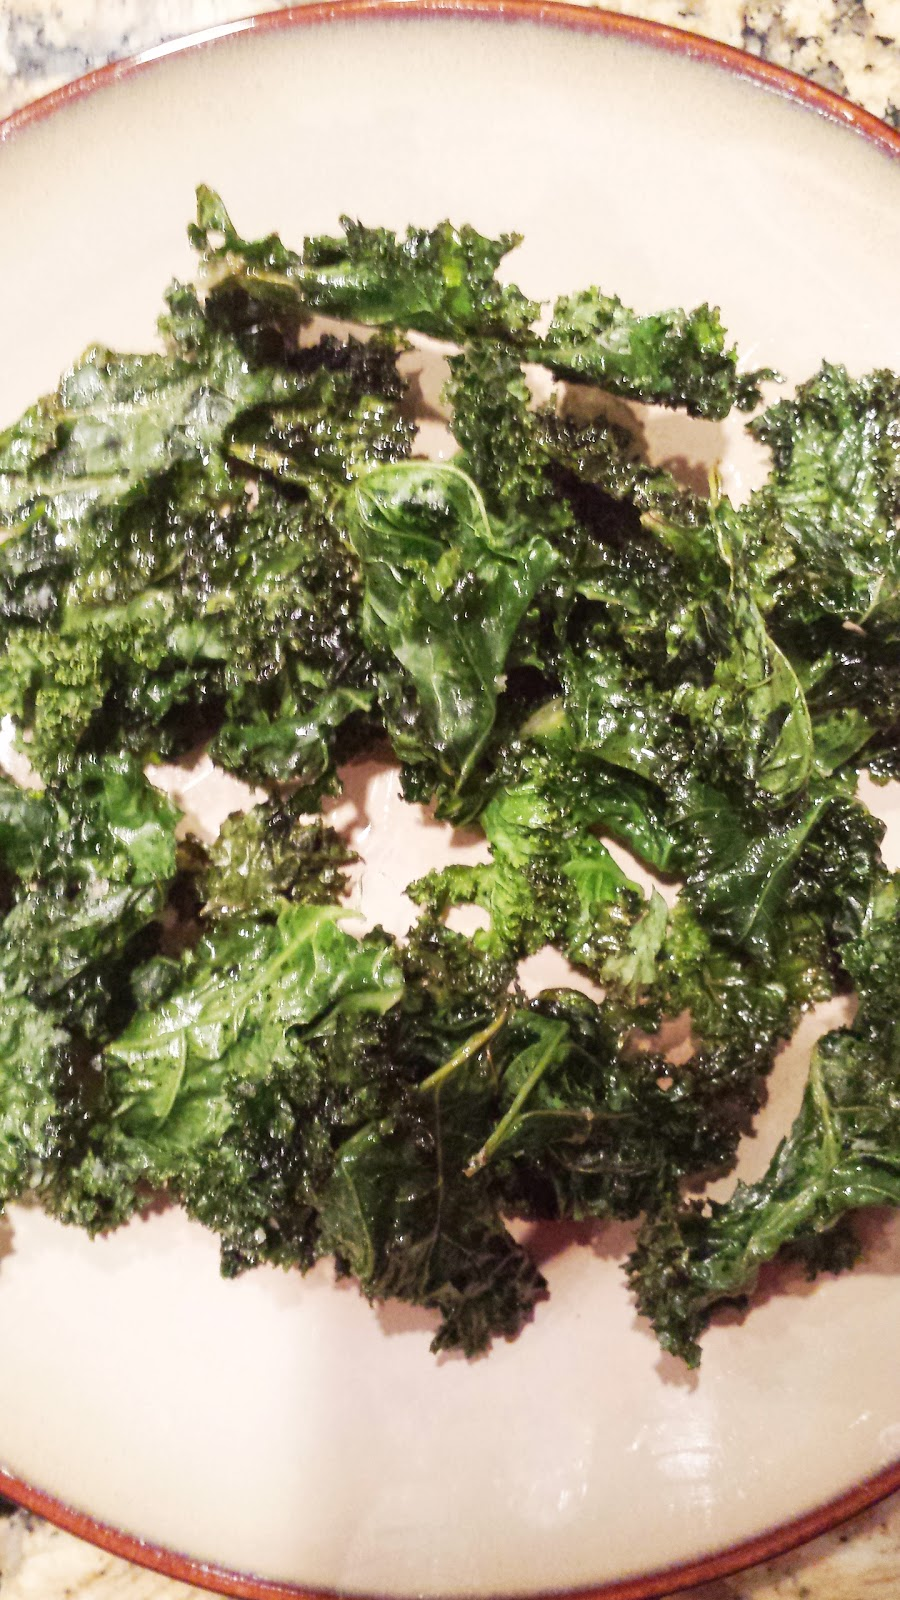 Deidra Penrose, weight loss, teambeach body, healthy snacks, easy snacks, fitness motivation, shakeology, nutrition, fitness, clean eating, fruit, fruit plate, healthy foods, healthy lifestyle, health and fitness coach, kale chips